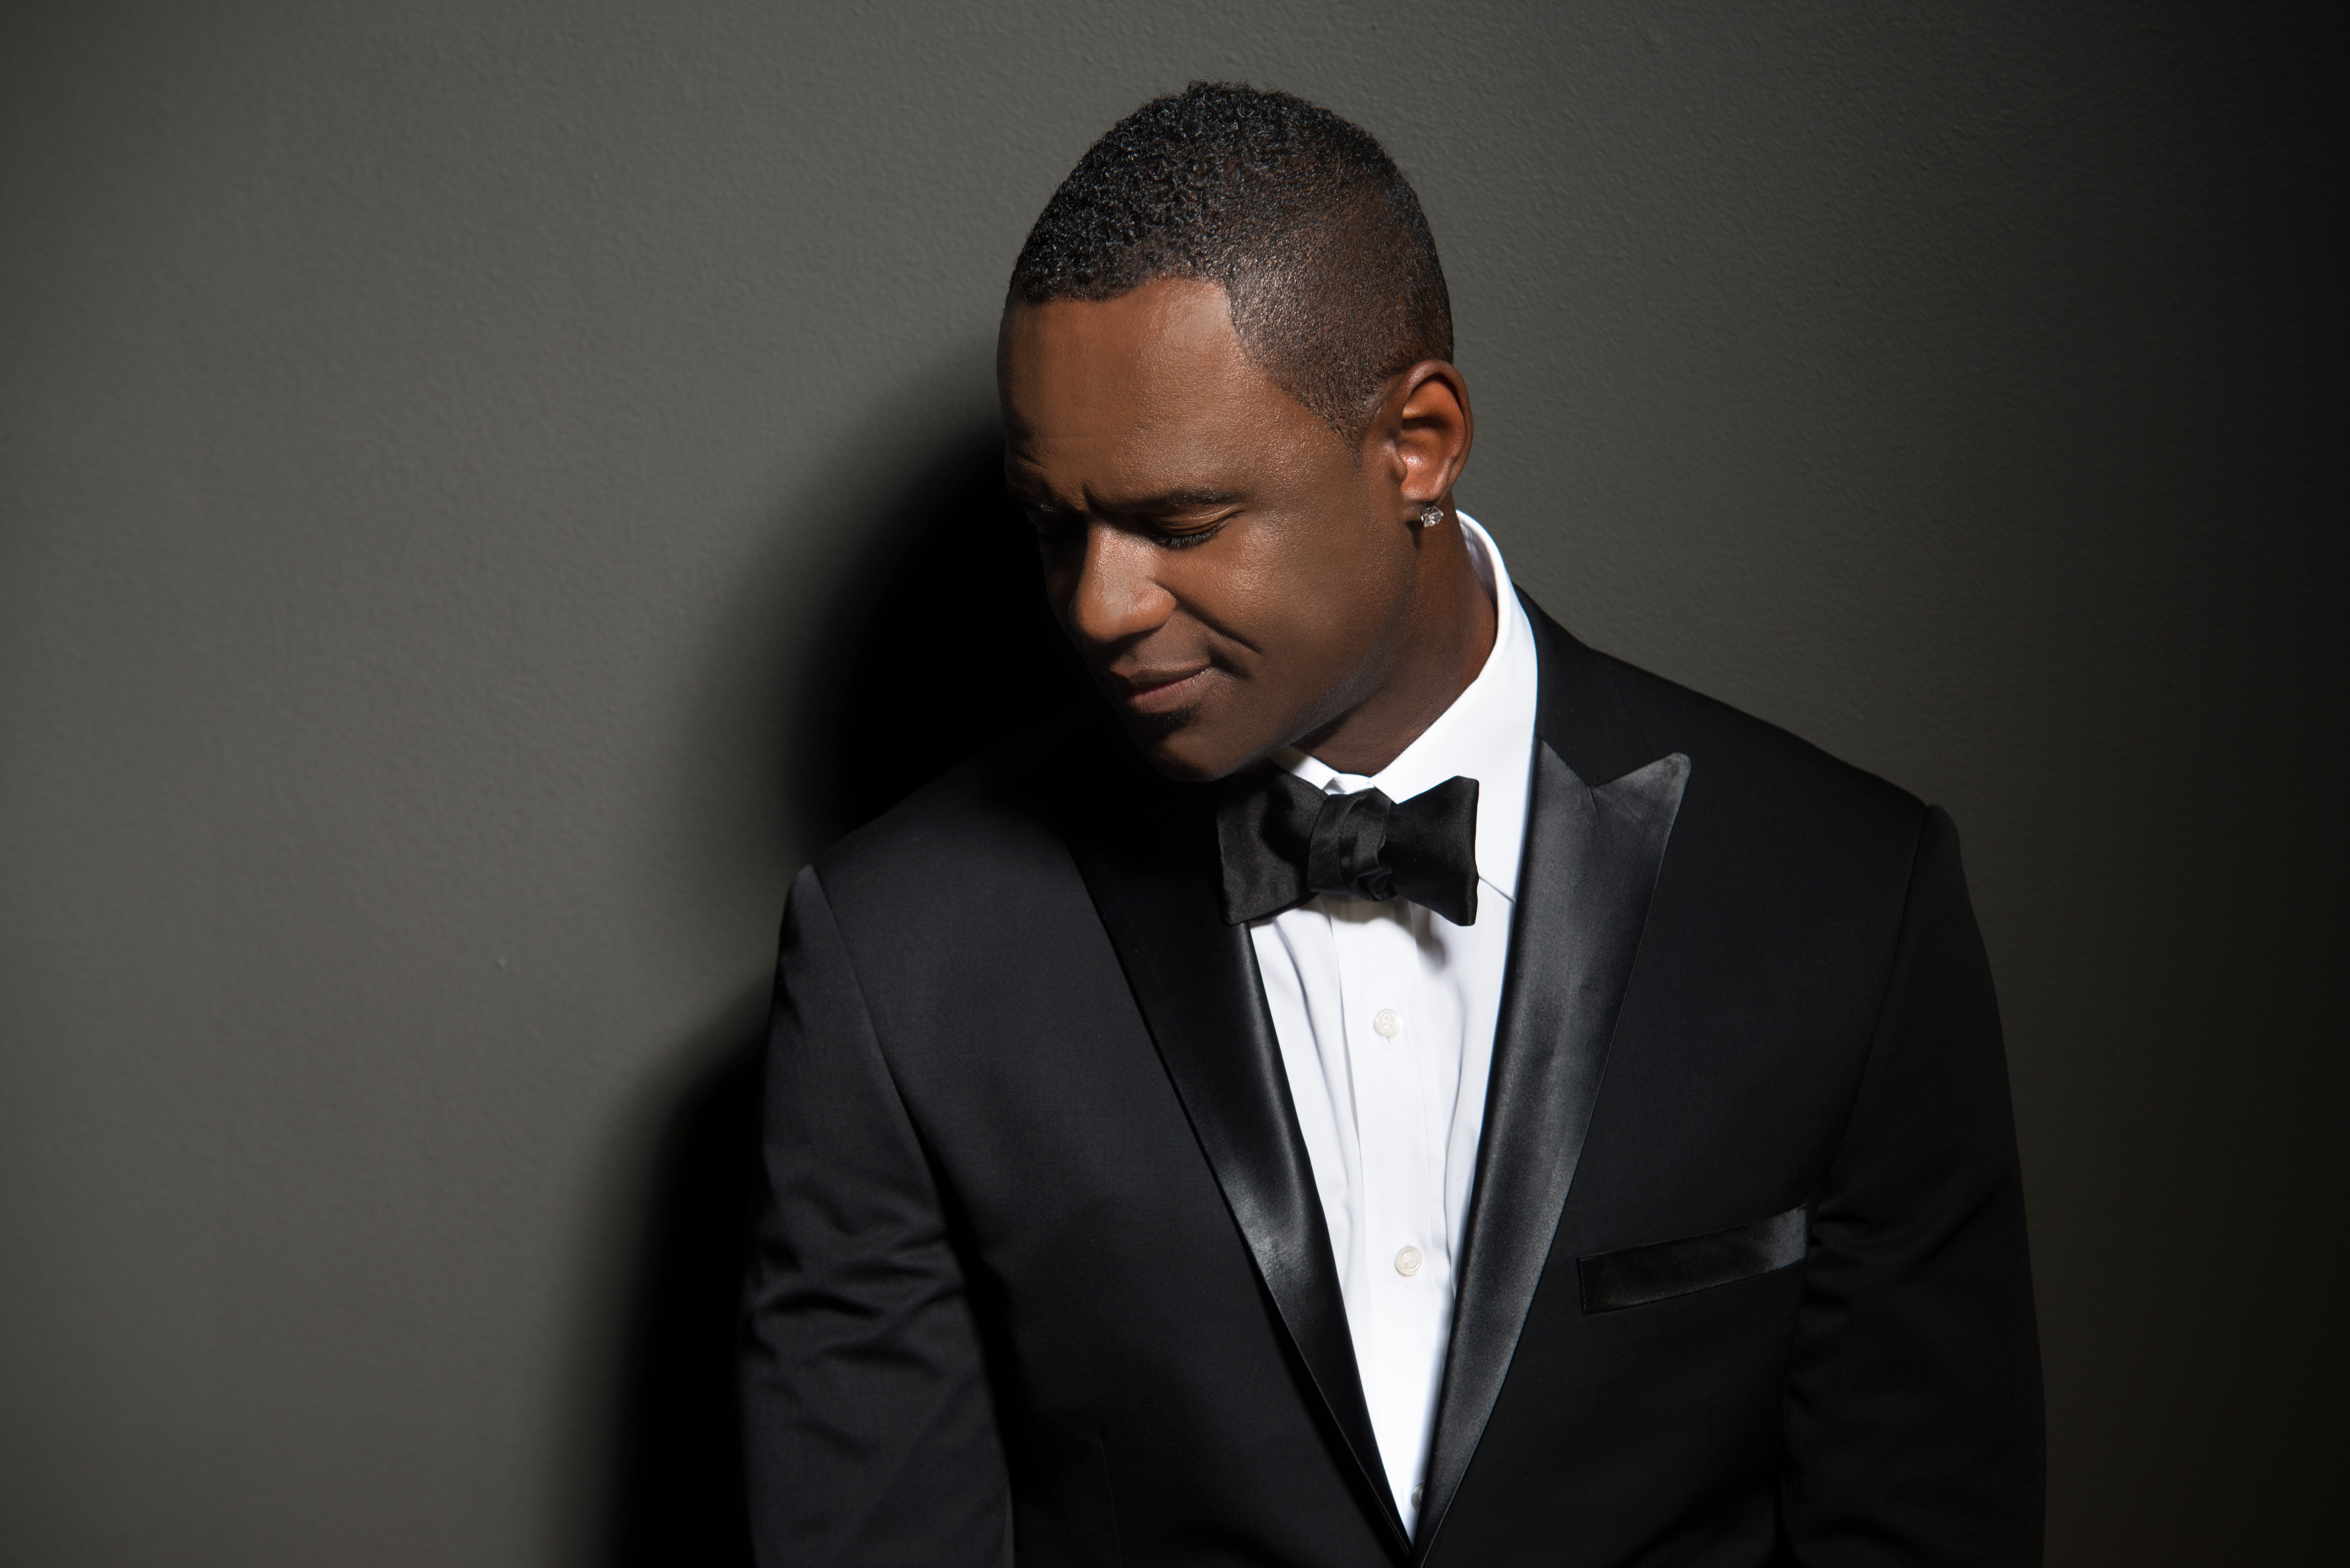 Watch The Performance That Made Brian McKnight The Top Trending Topic In The United States